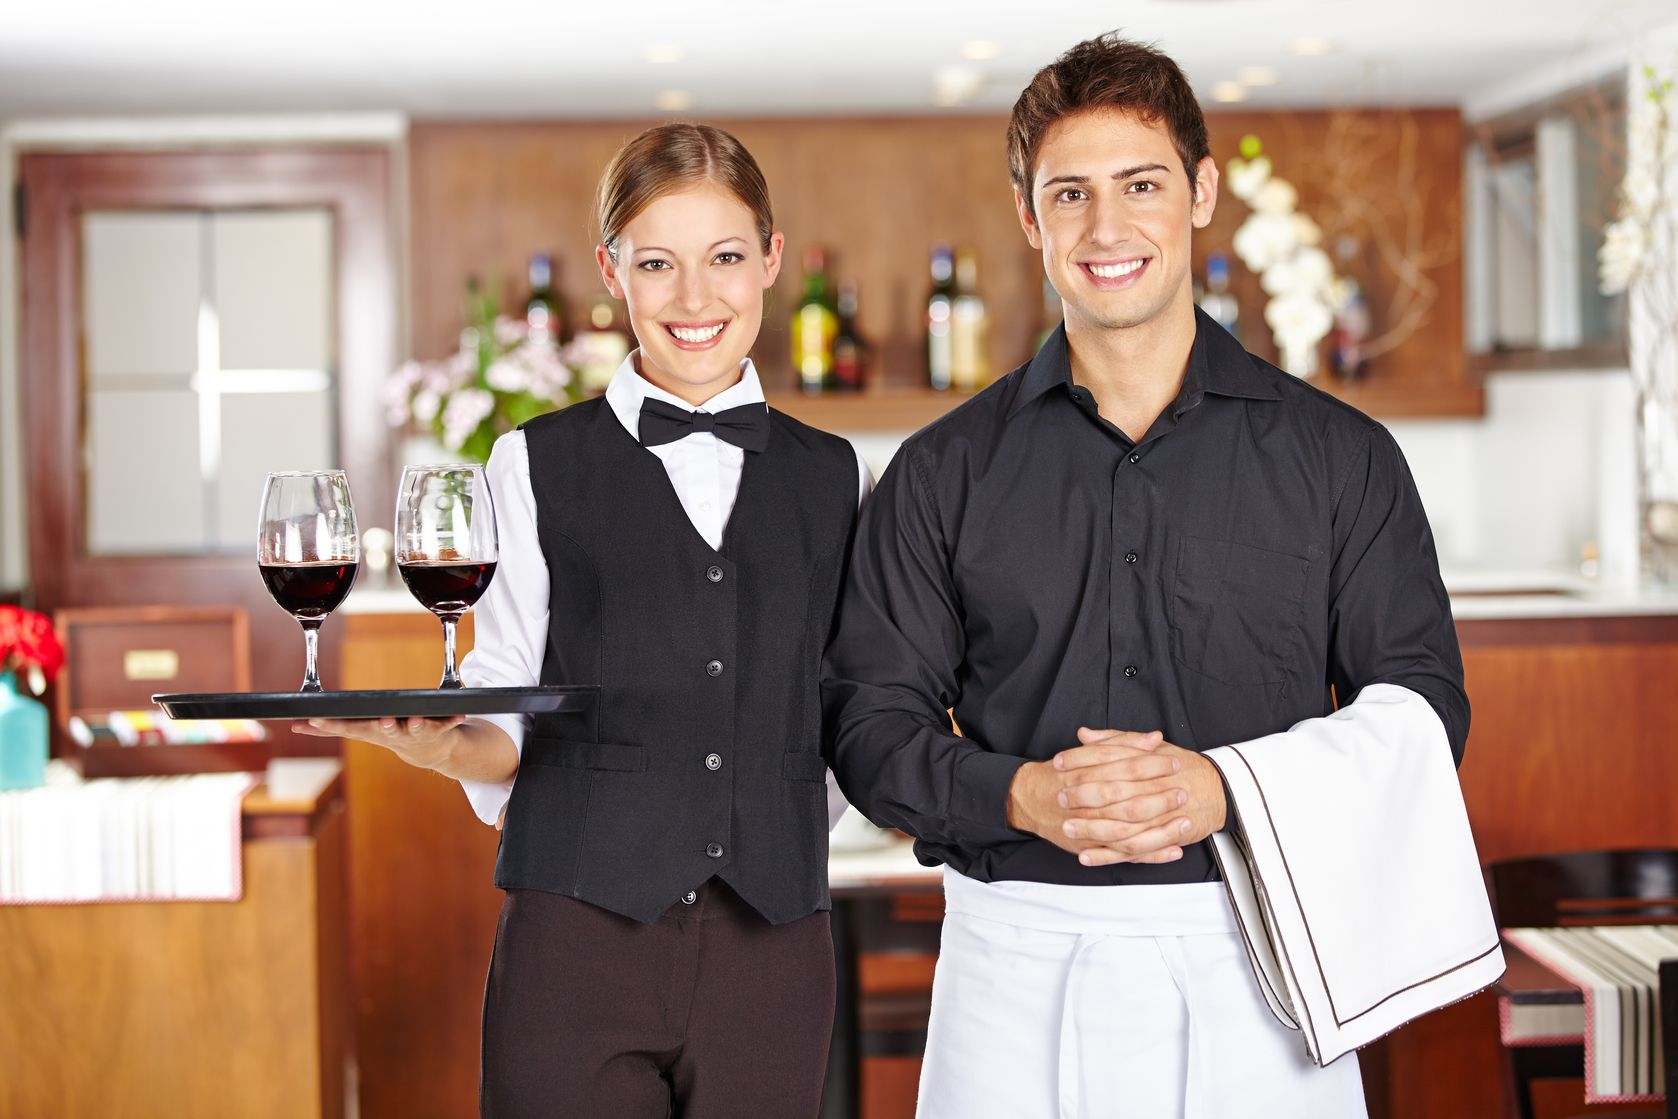 Hospitality and Catering Business for sale in Townsville